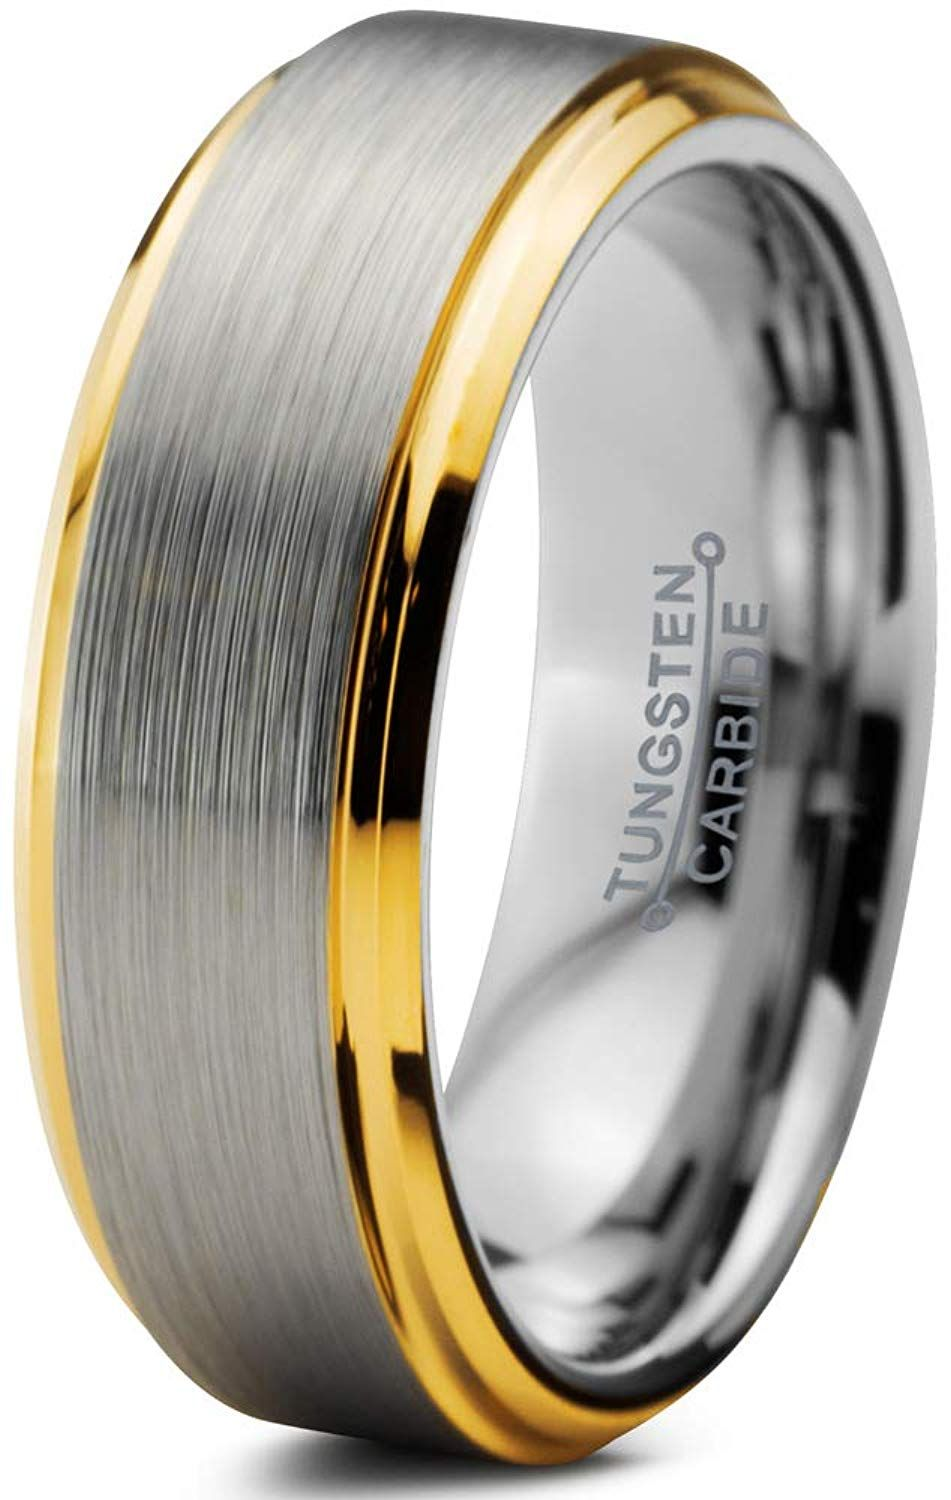 ec51c8f68f3cc Charming Jewelers Tungsten Wedding Band Ring 6mm Men Women Comfort ...